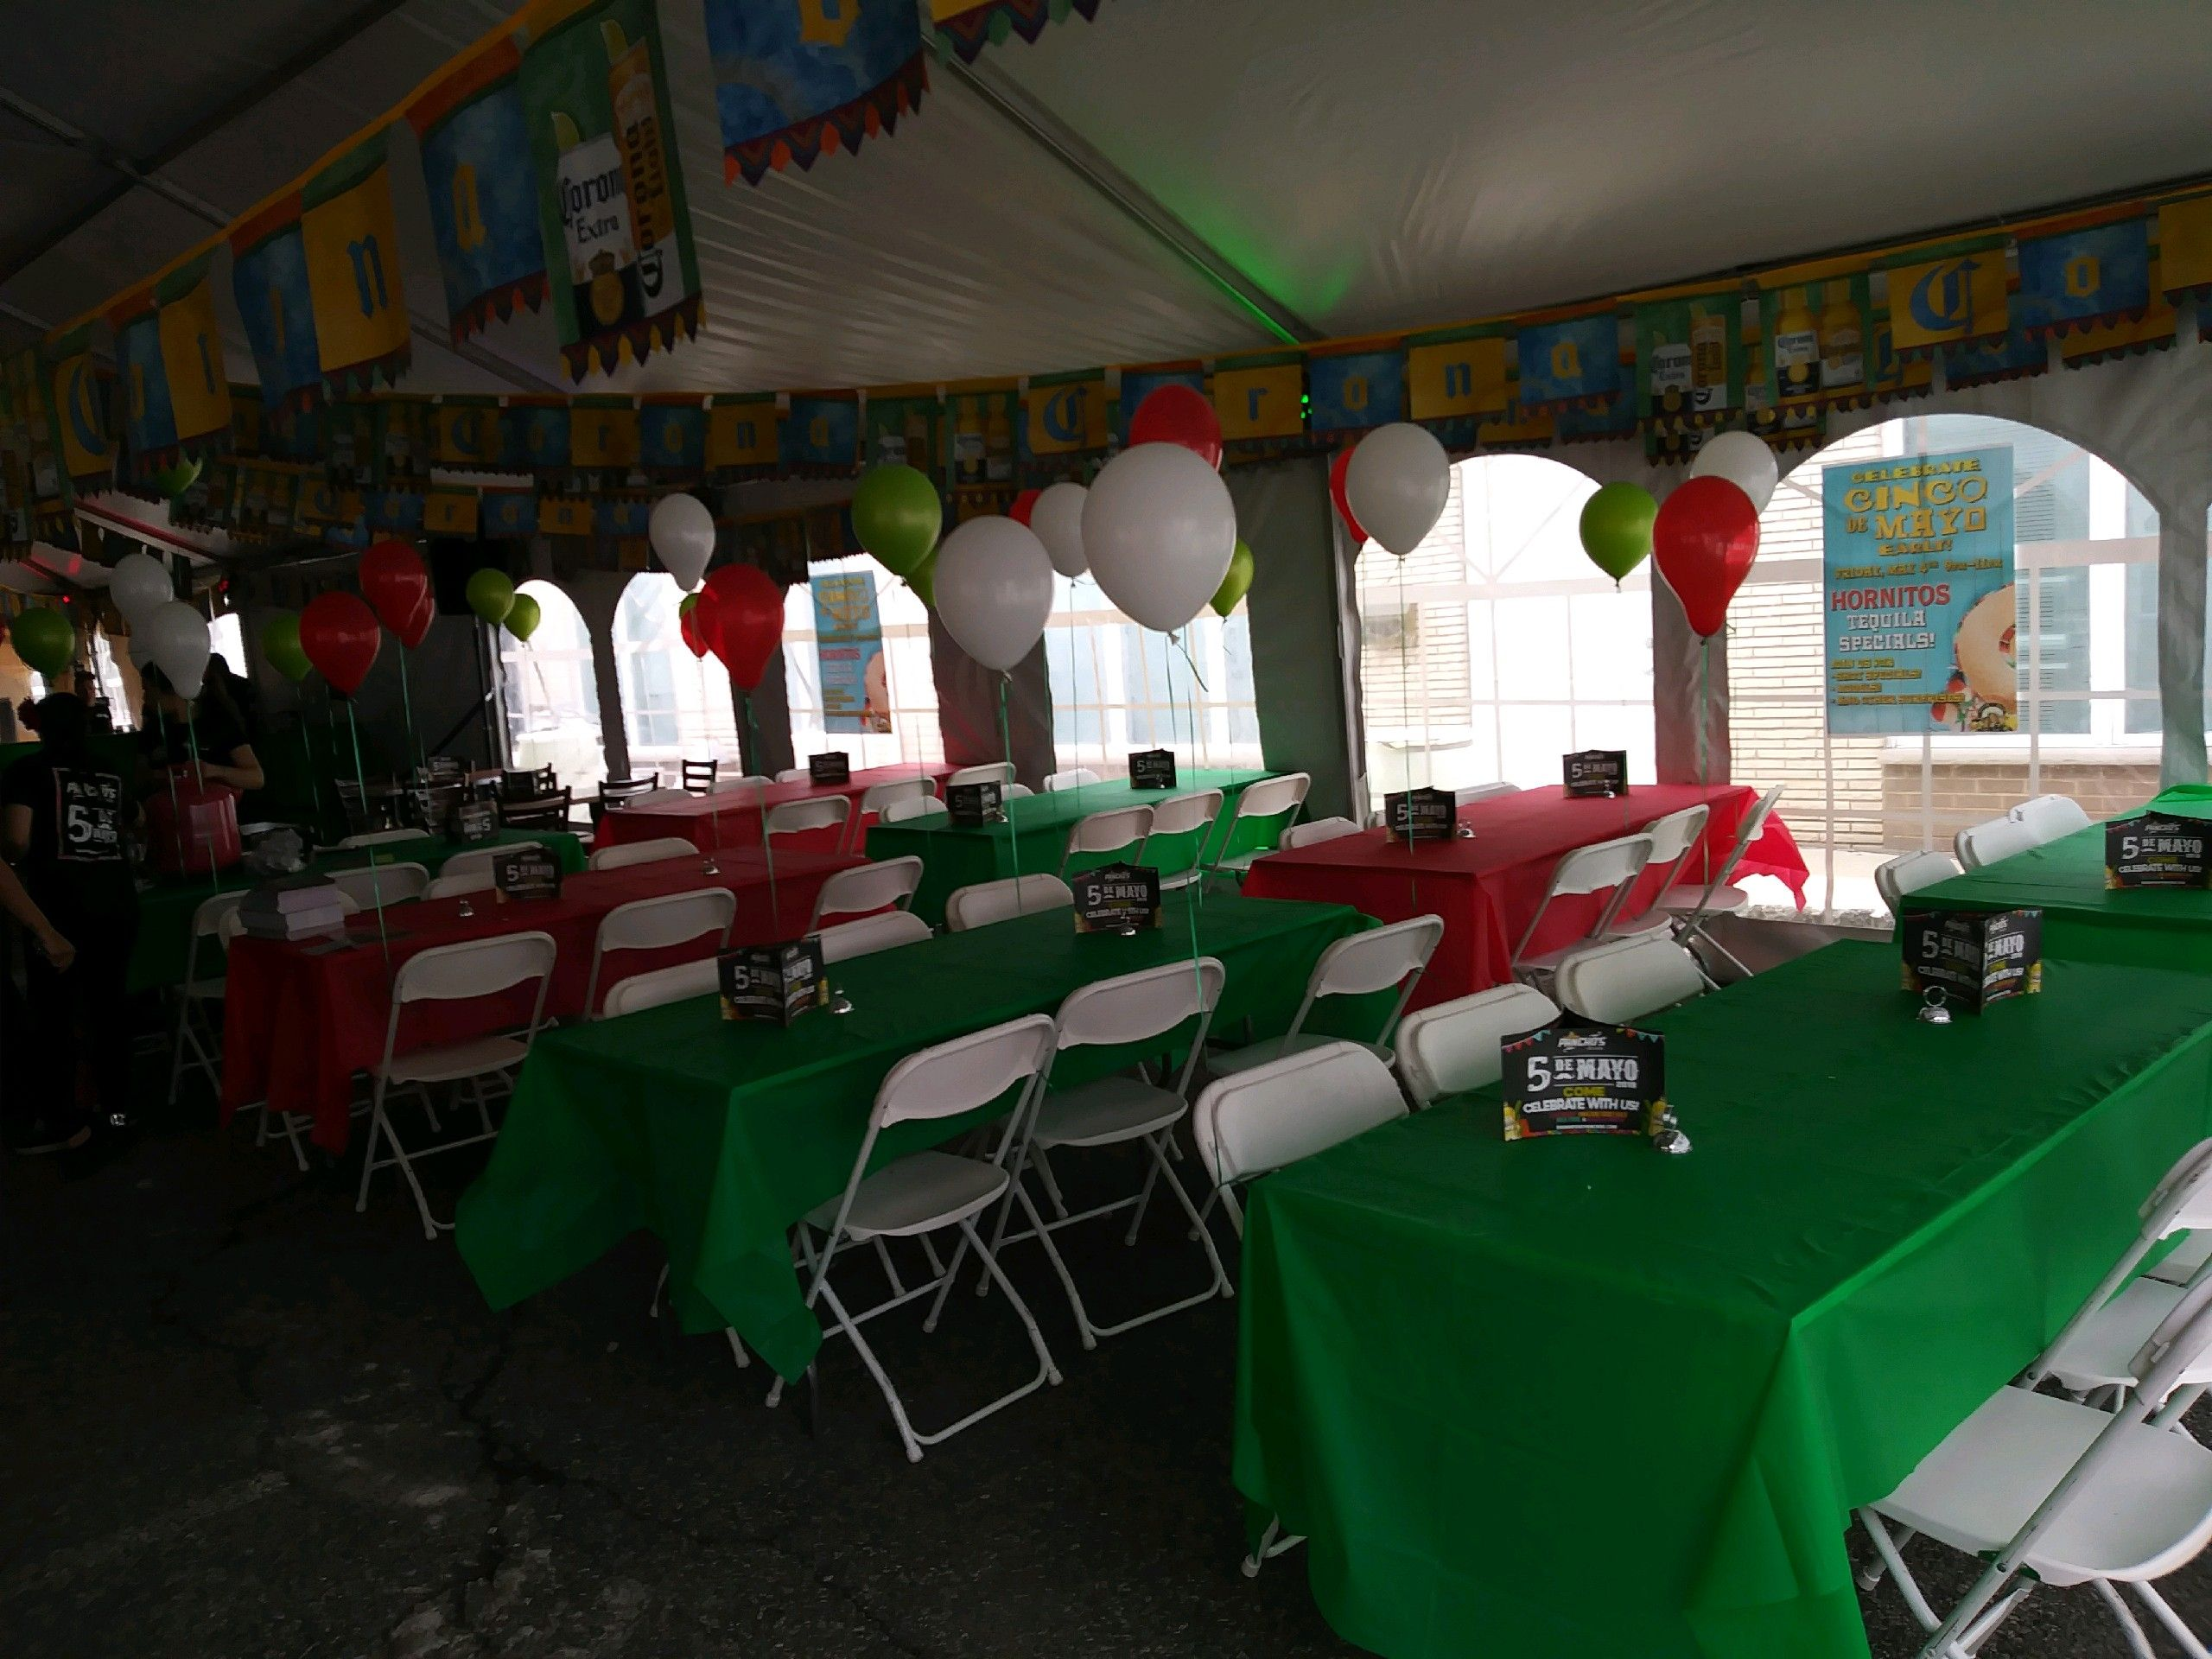 Affordable Catering Chairs China Deejay Dj Event Golfouting Linens Newjersey Nj Party Partytheme Planning Rentals Tent Rentals Table Home Decor